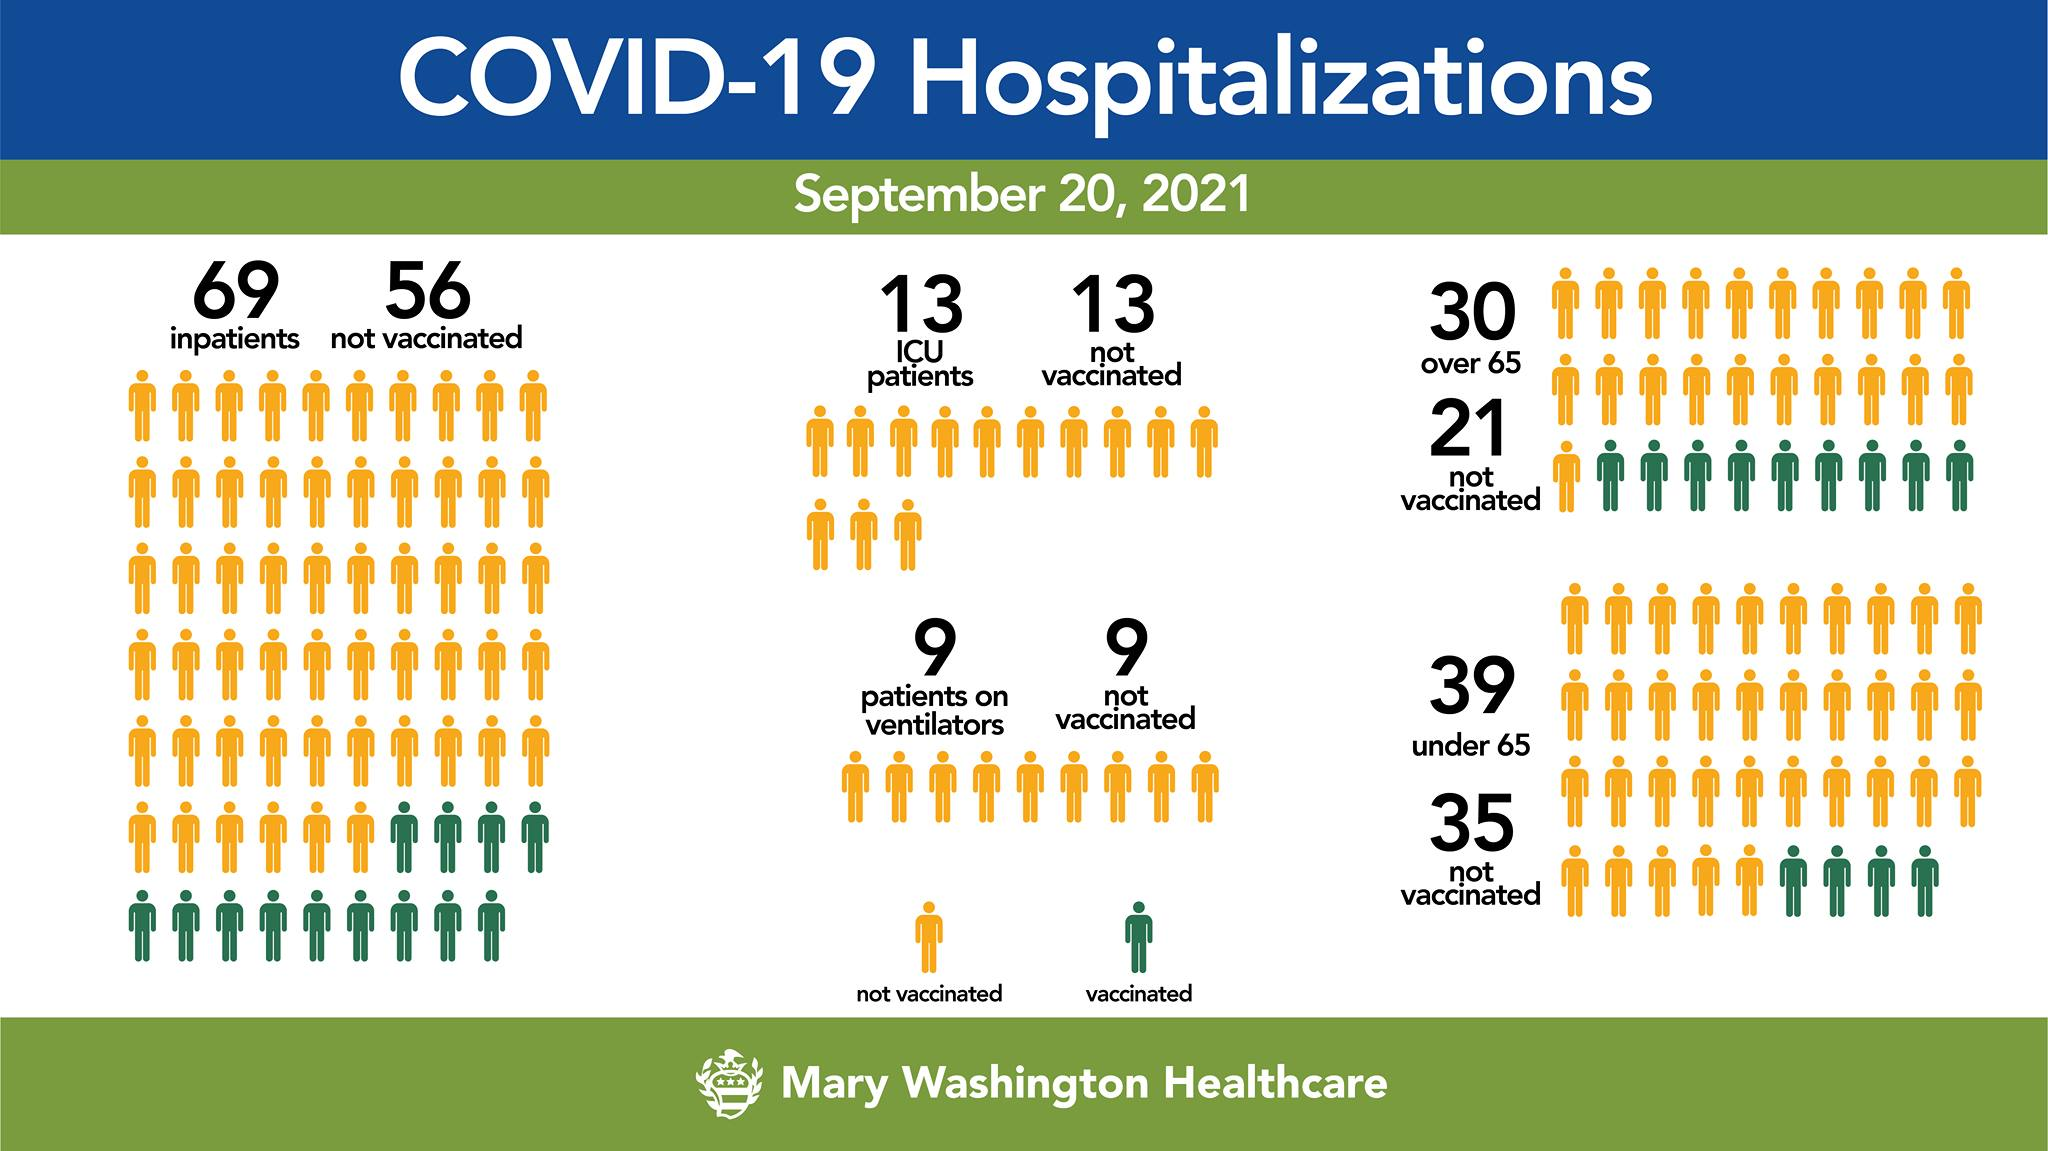 MWHC numbers continue to show most COVID hospitalizations are unvaccinated